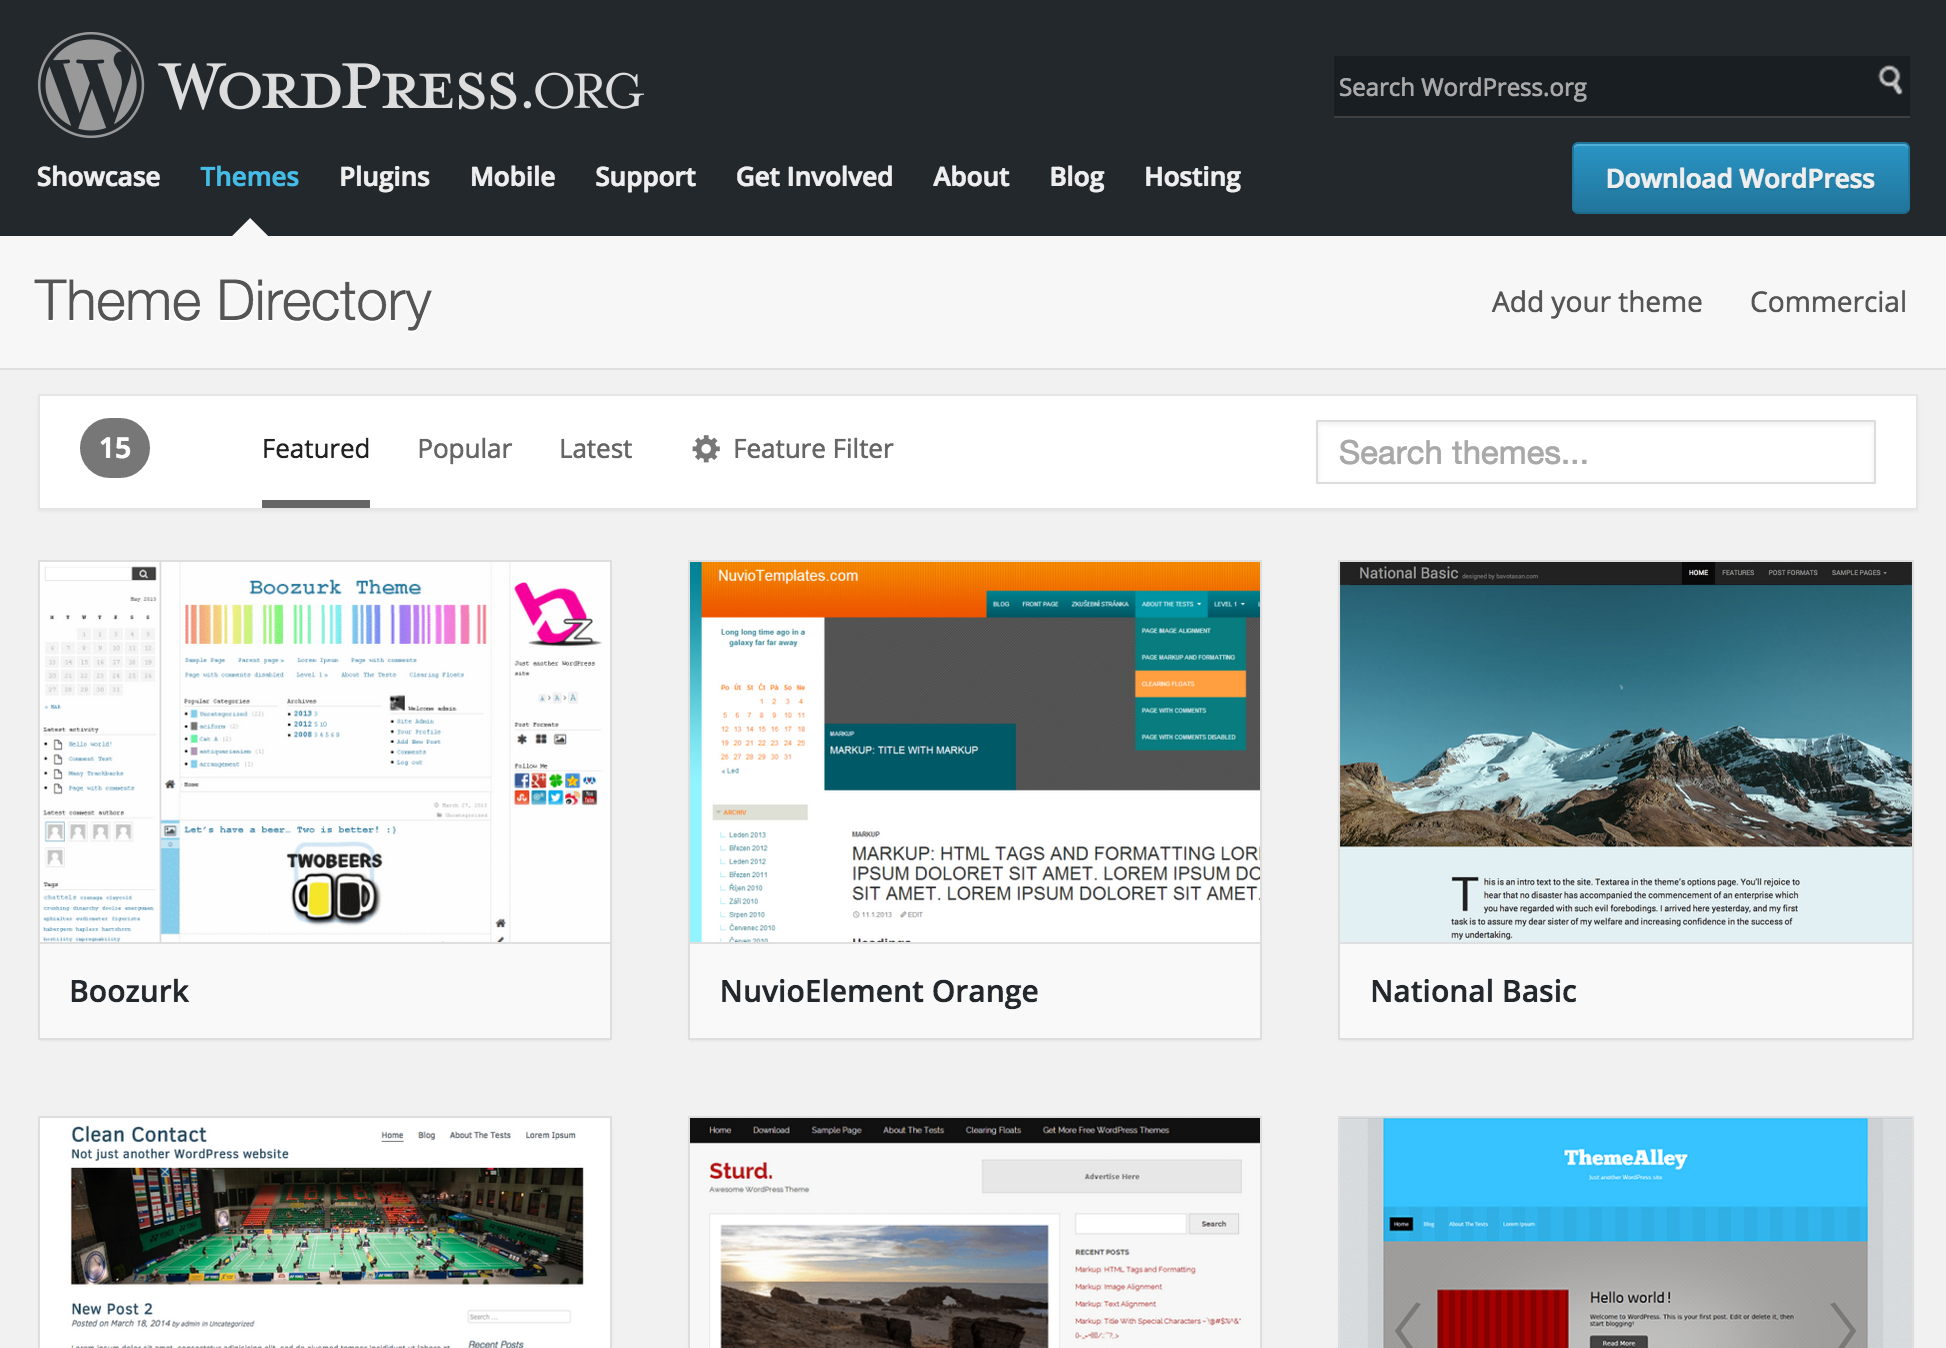 The new WordPress theme directory